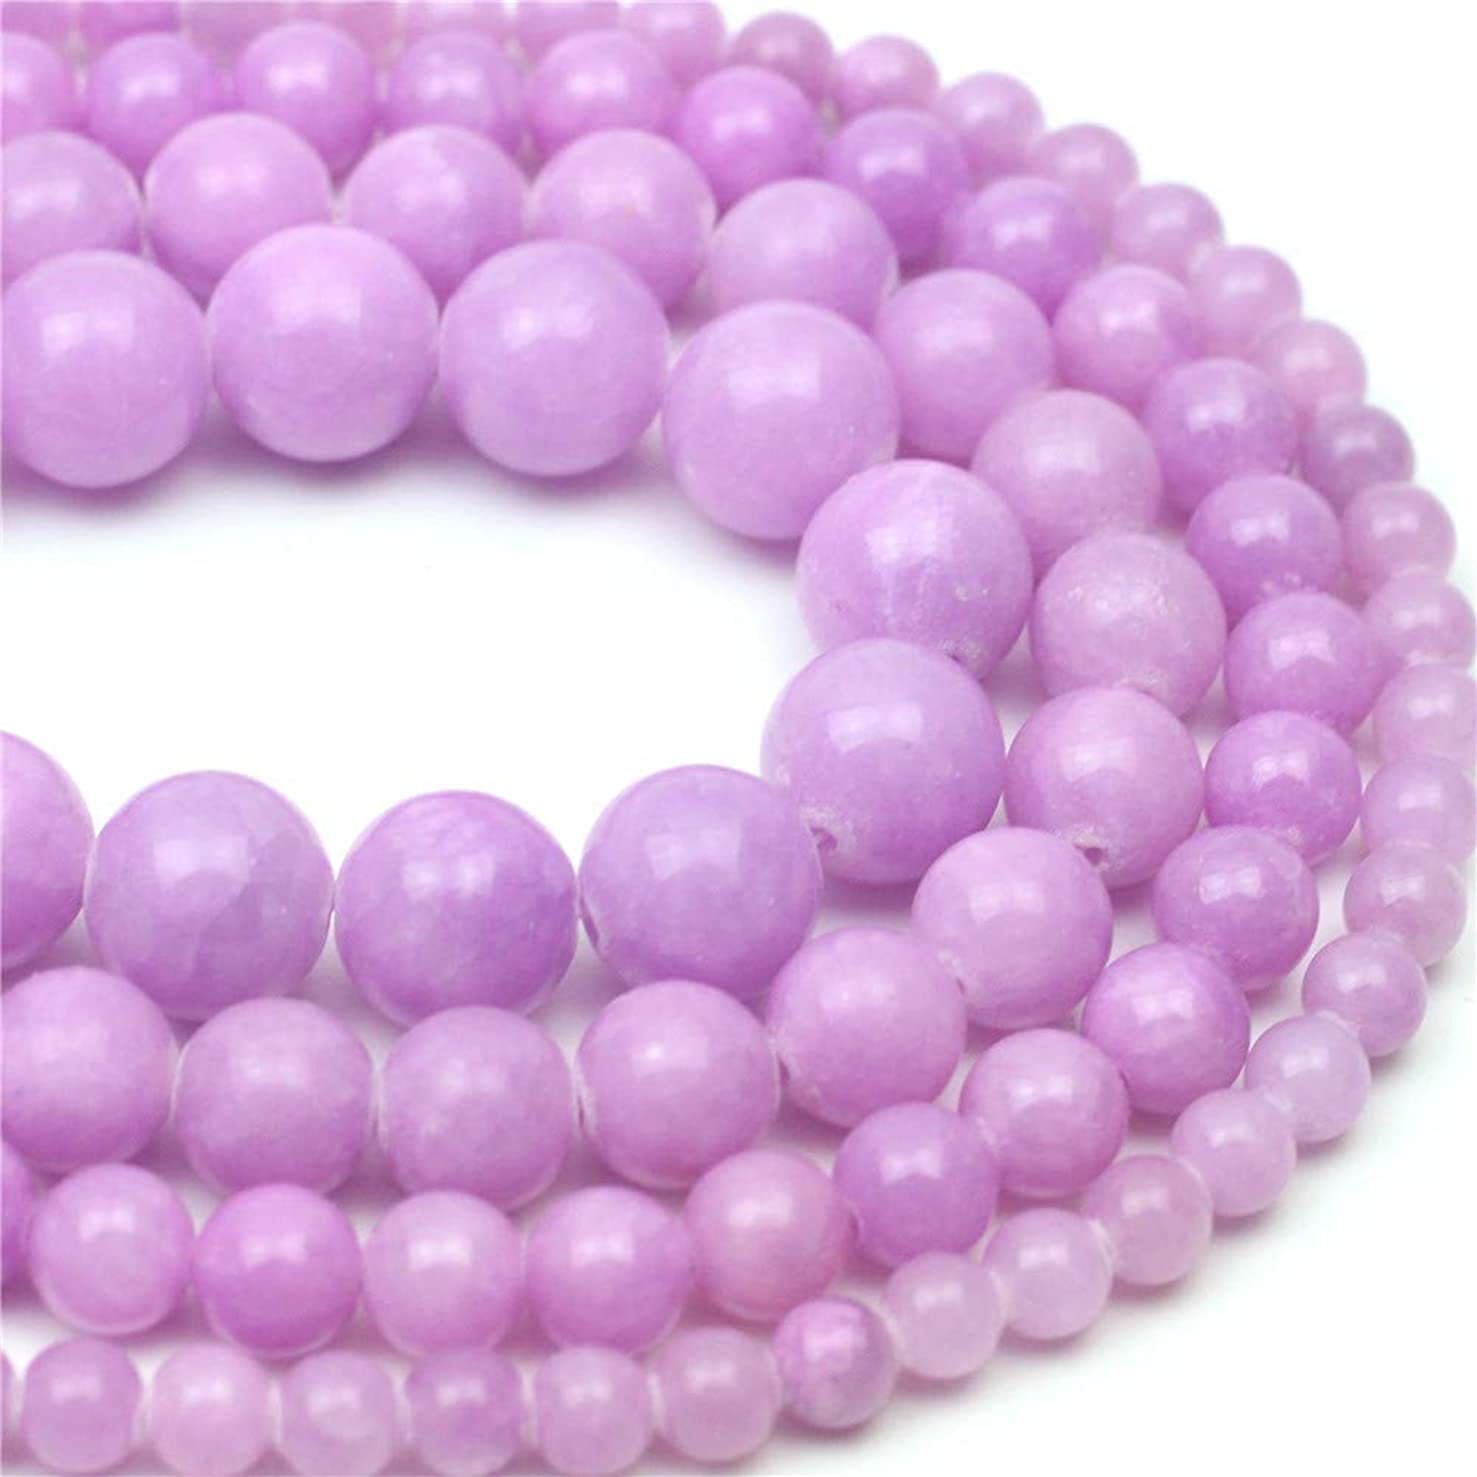 Oameusa 10mm Purple Jade Beads Round Beads Gemstone Beads Loose Beads Agate Beads for Jewelry Making 15